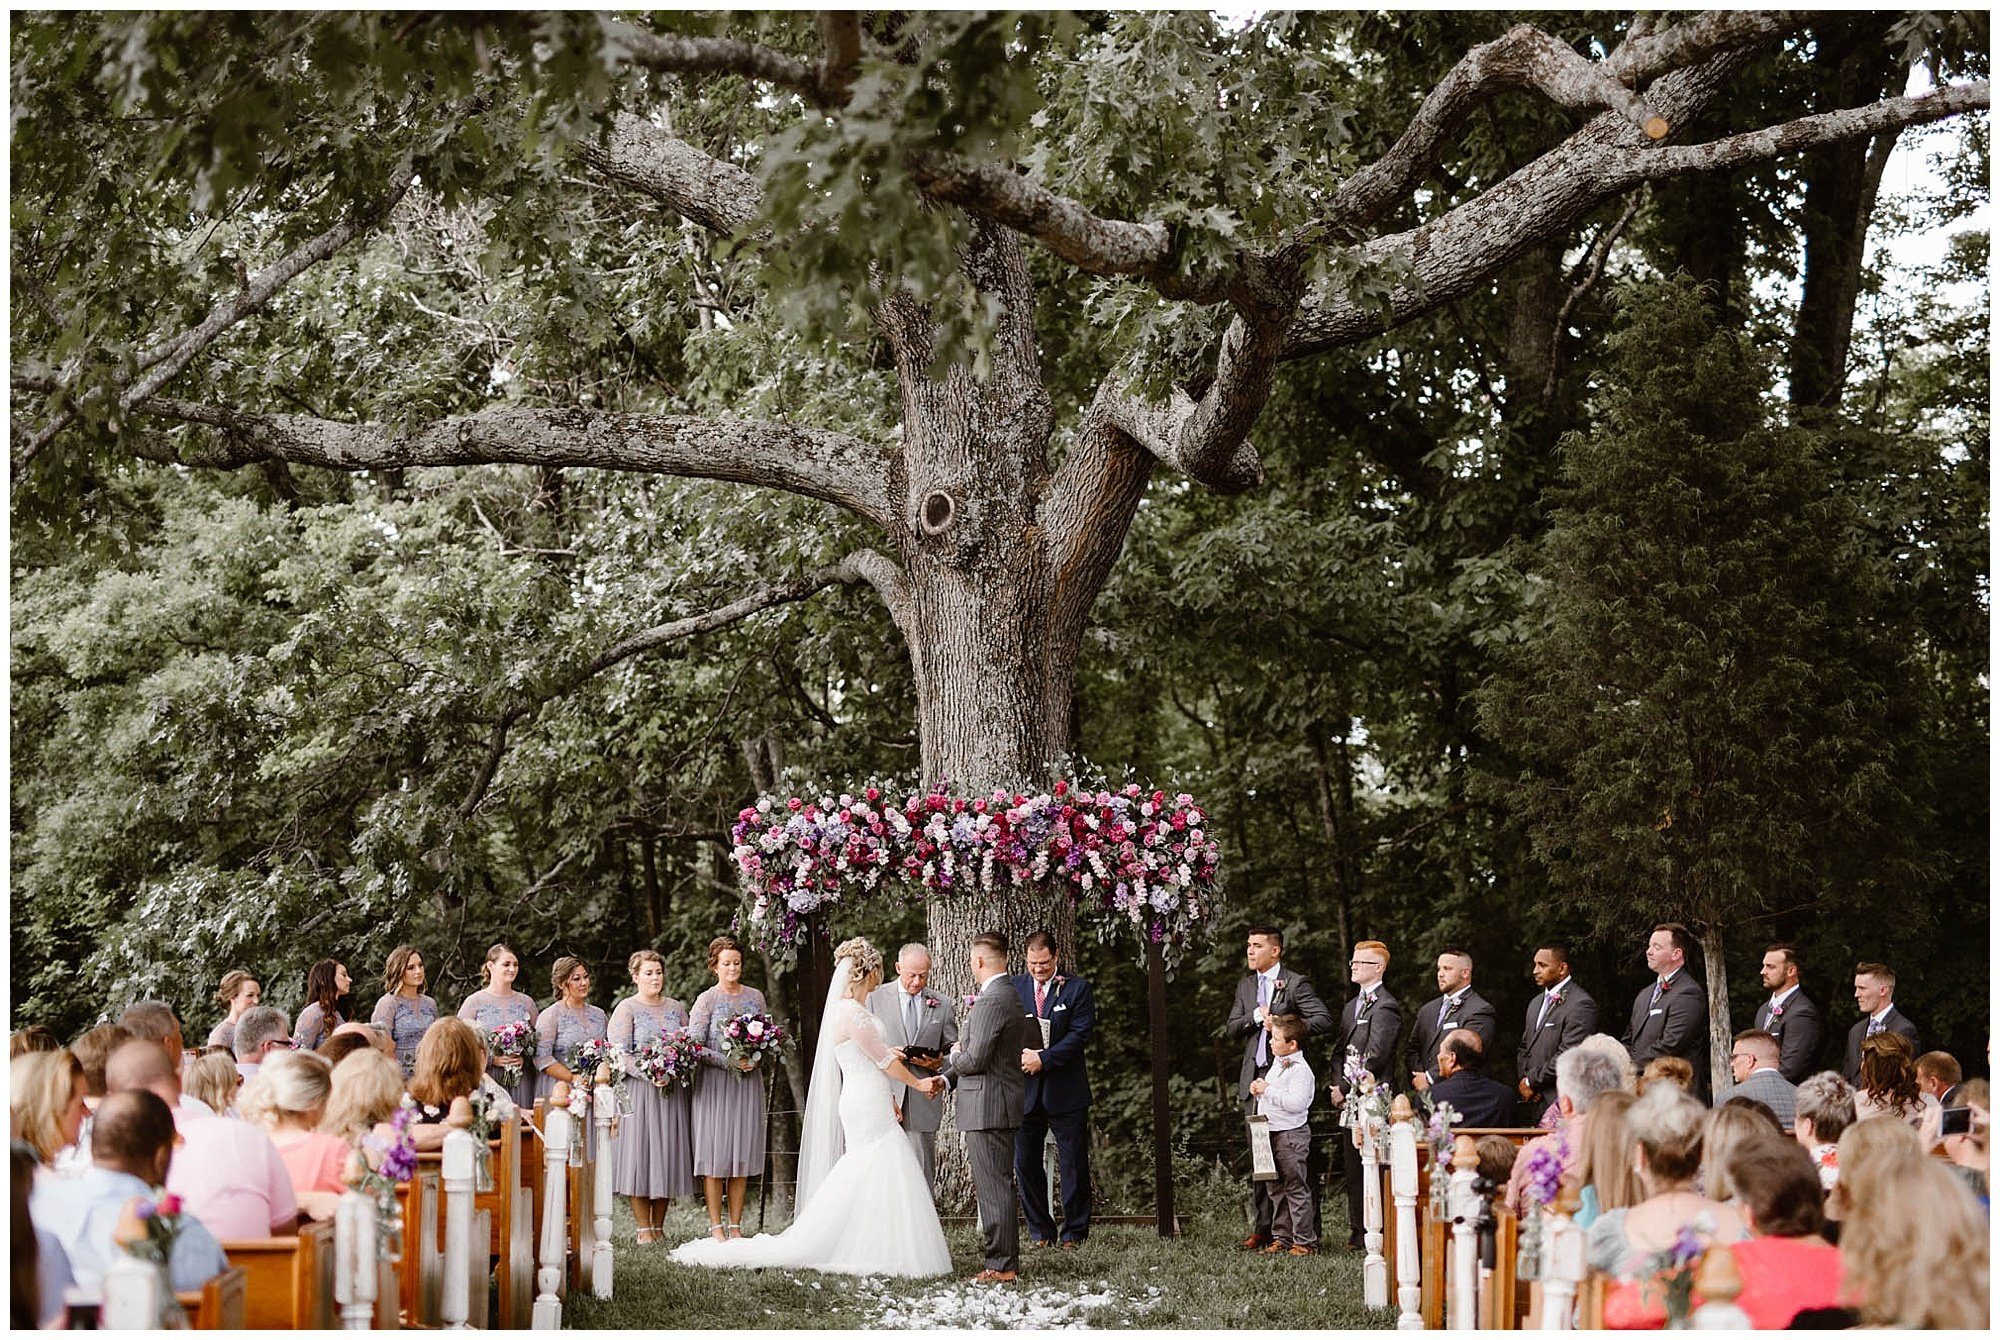 Saying Vows Under the Old Oak